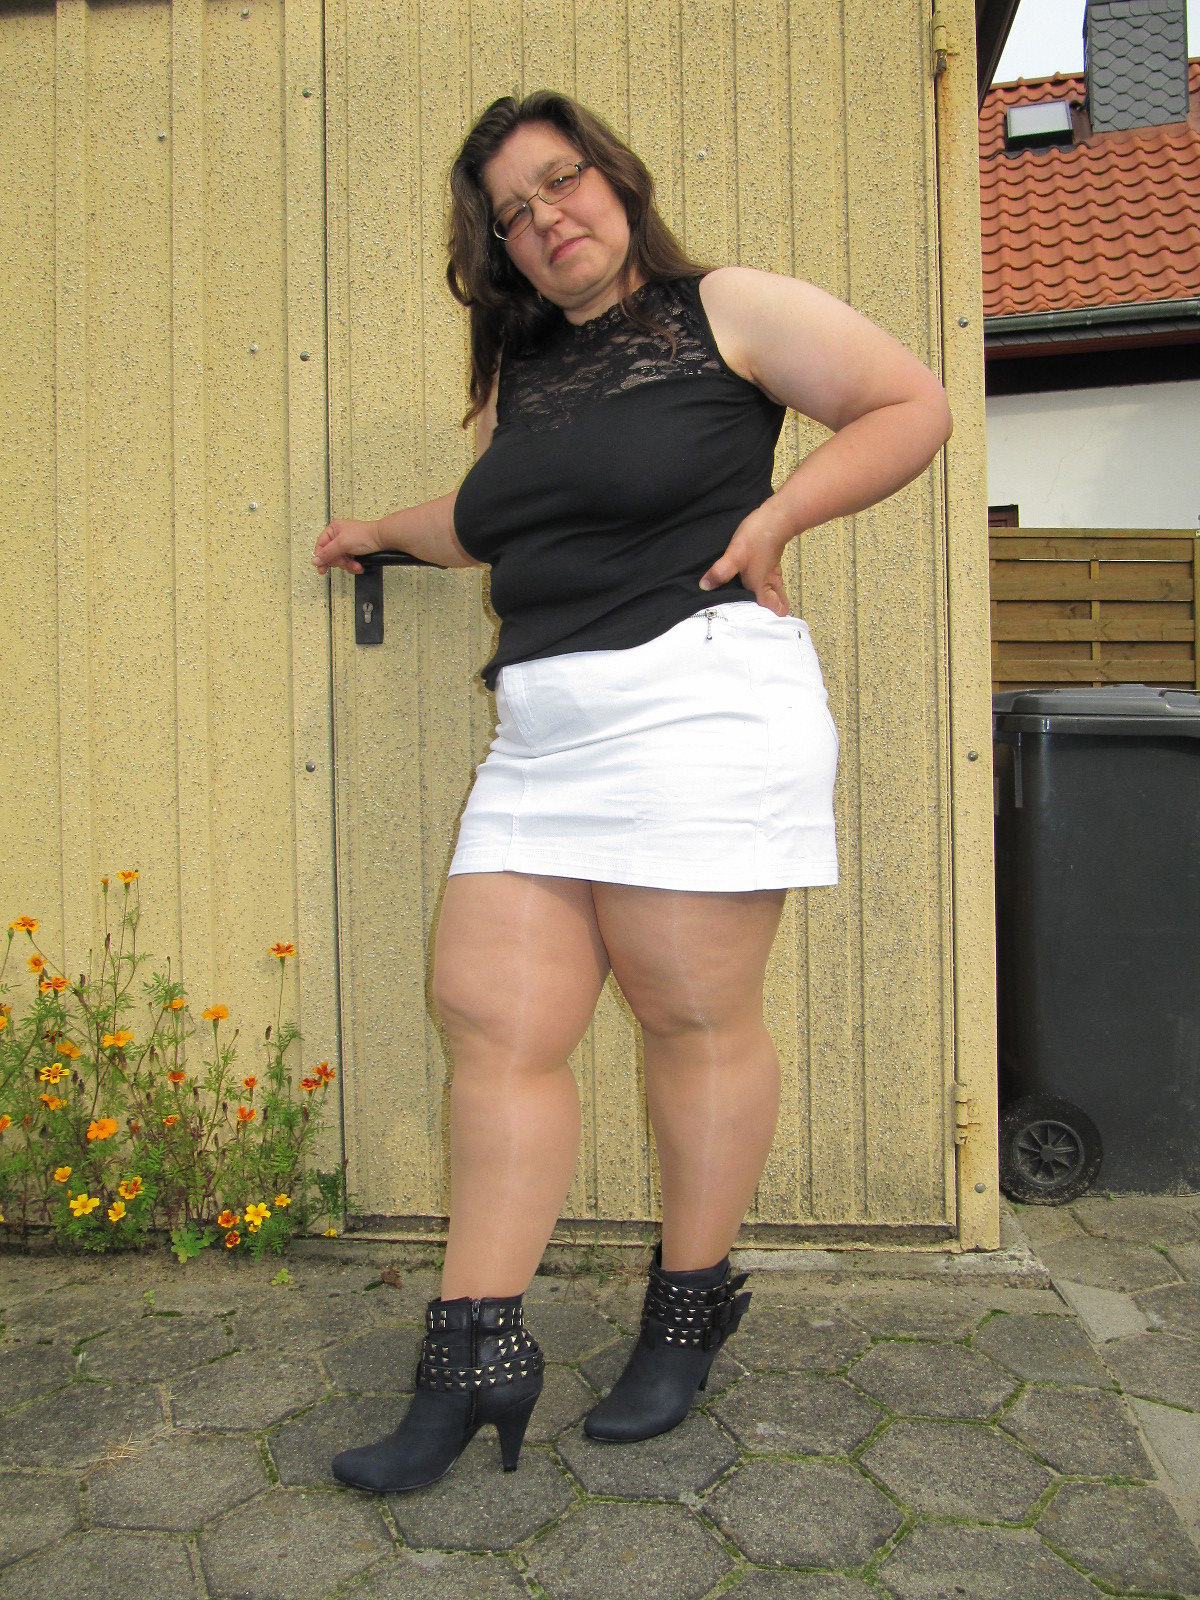 Right! amature bbw pics Almost the